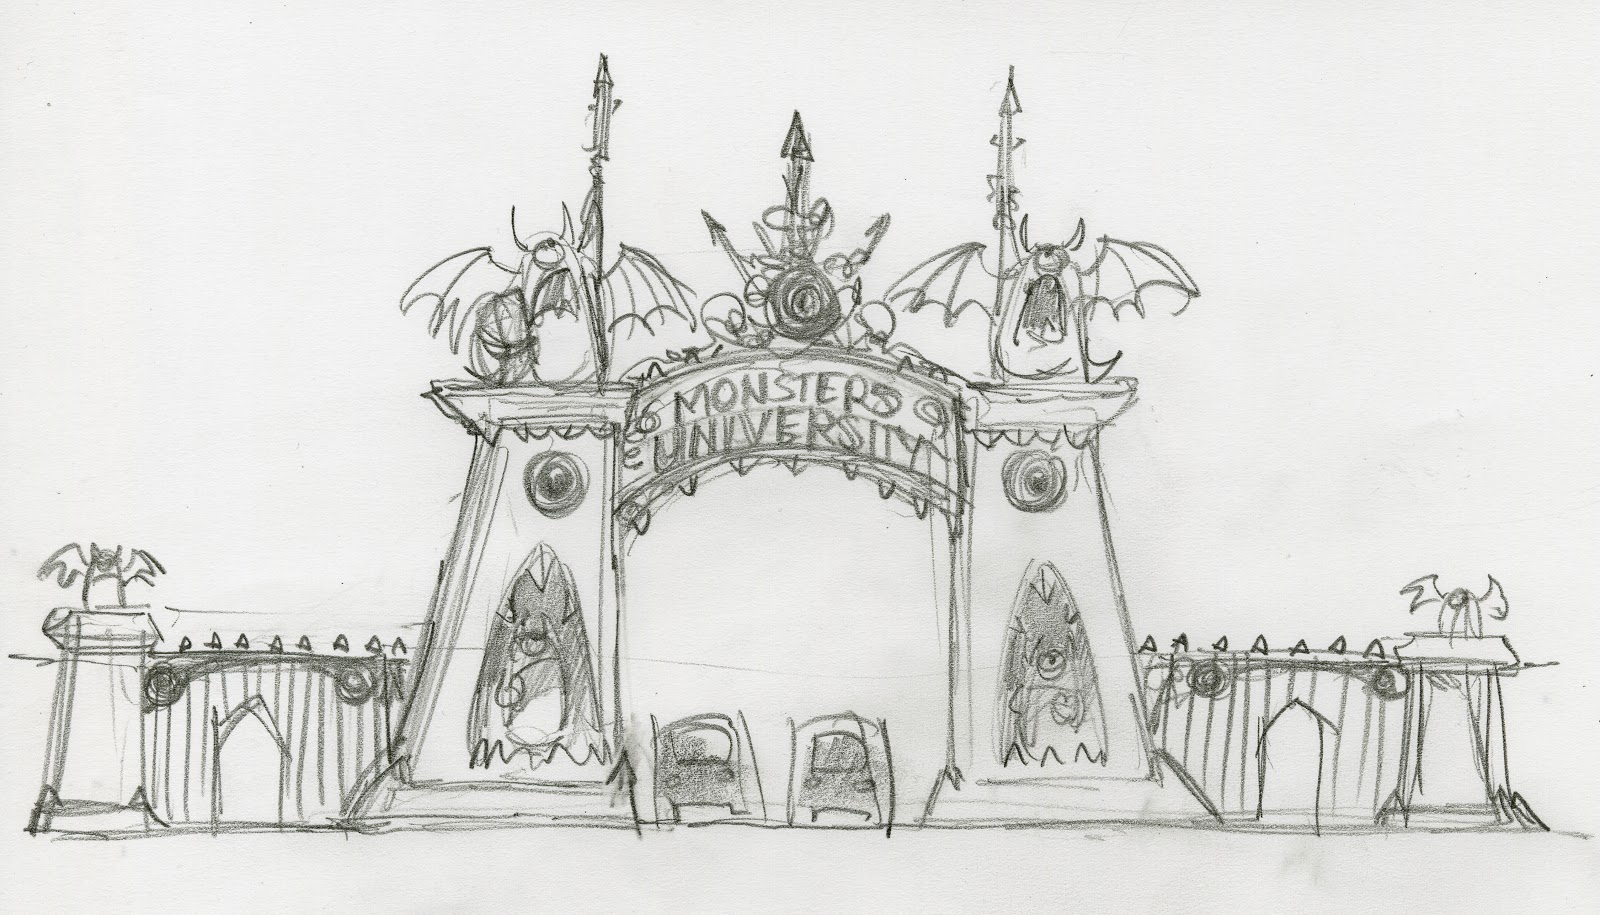 Gorgeous 'Monsters University' Concept Art Showcases Beautiful School Campus